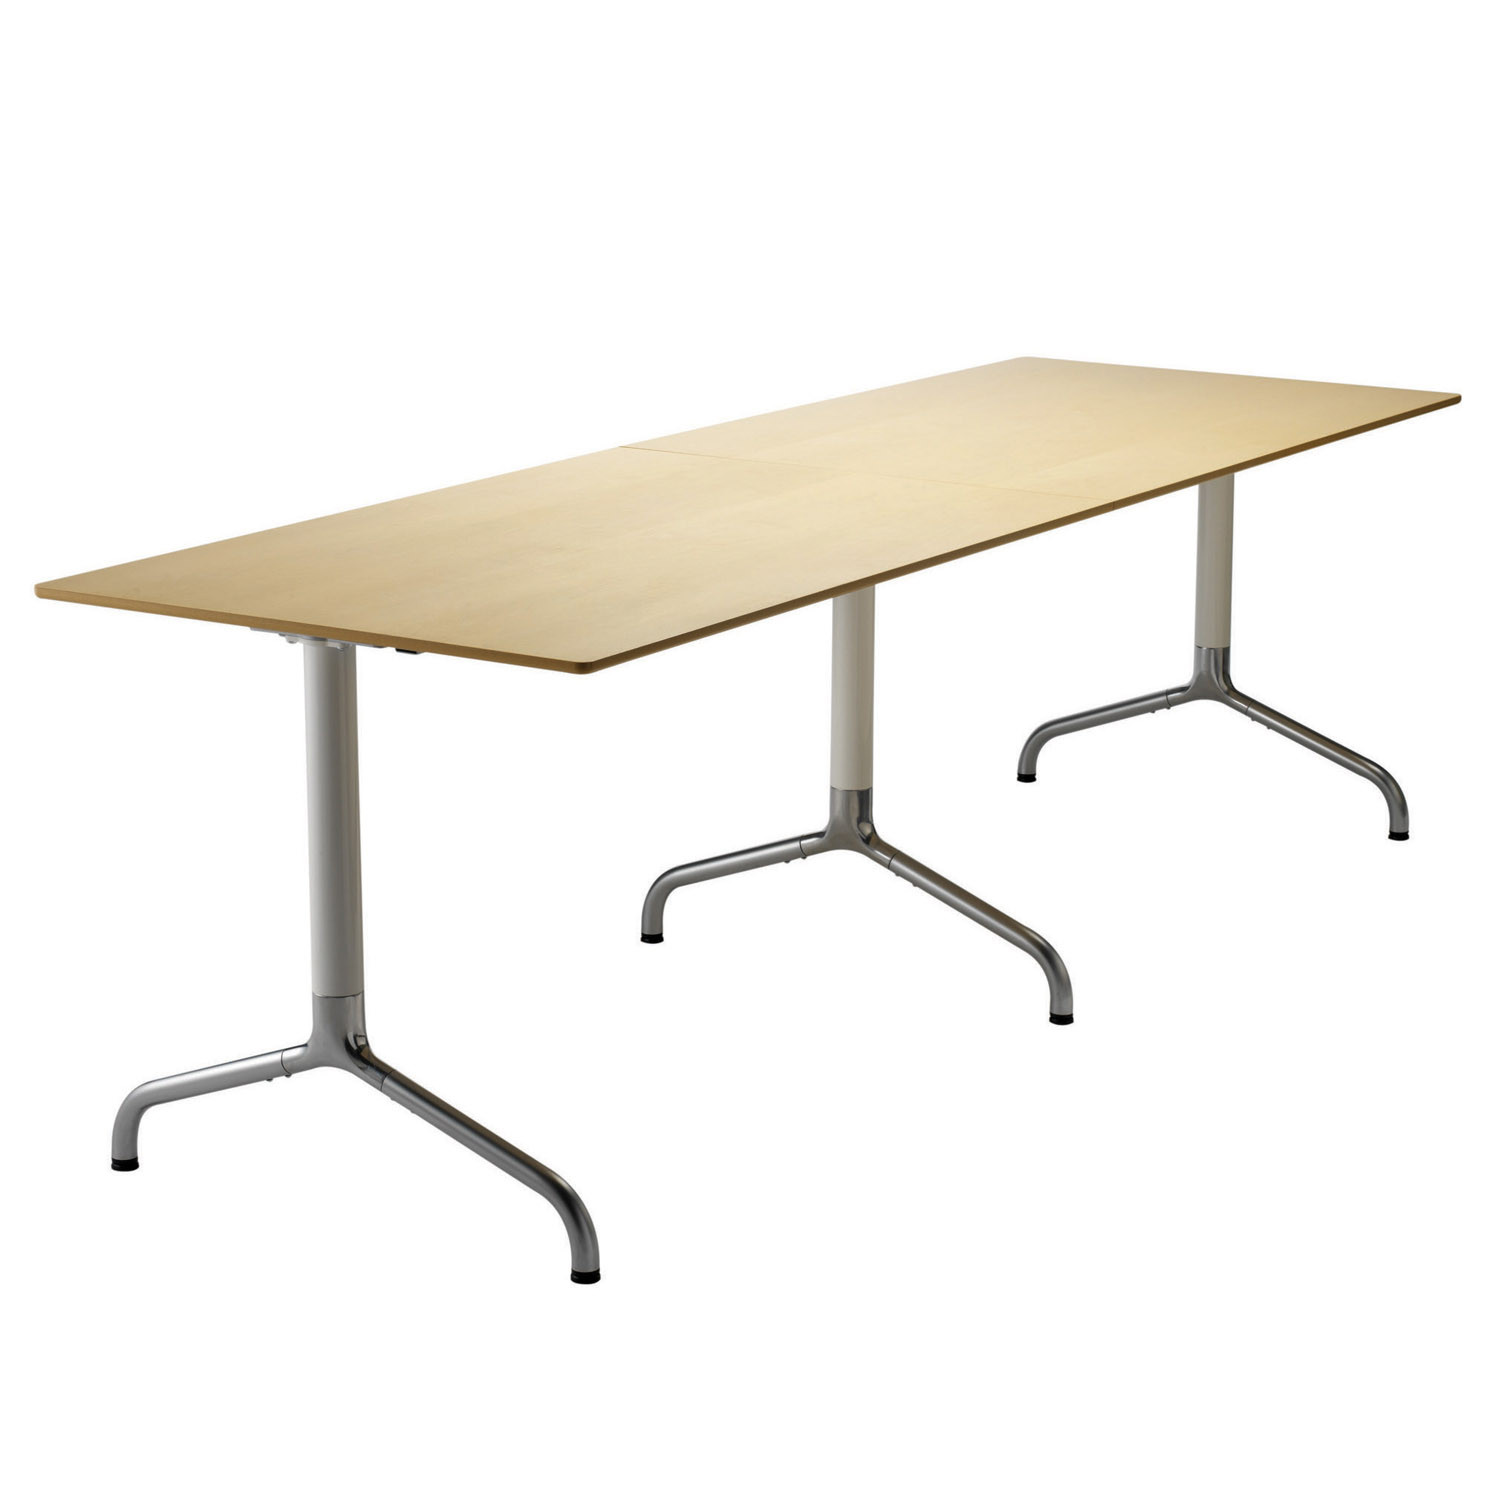 Ono Break Table